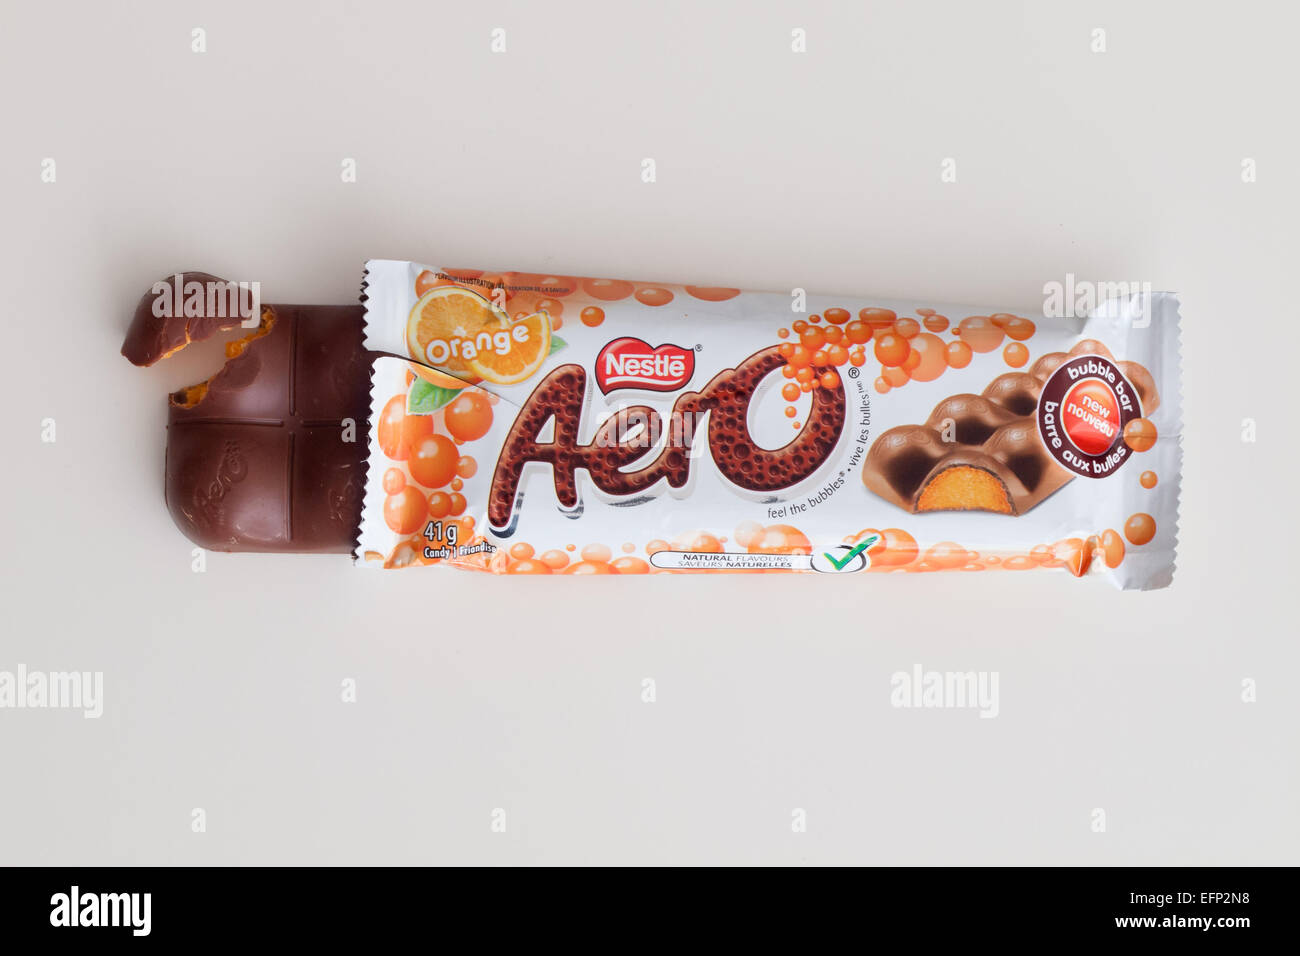 An Aero Orange chocolate bar, produced by Nestlé. Canadian packaging shown. - Stock Image